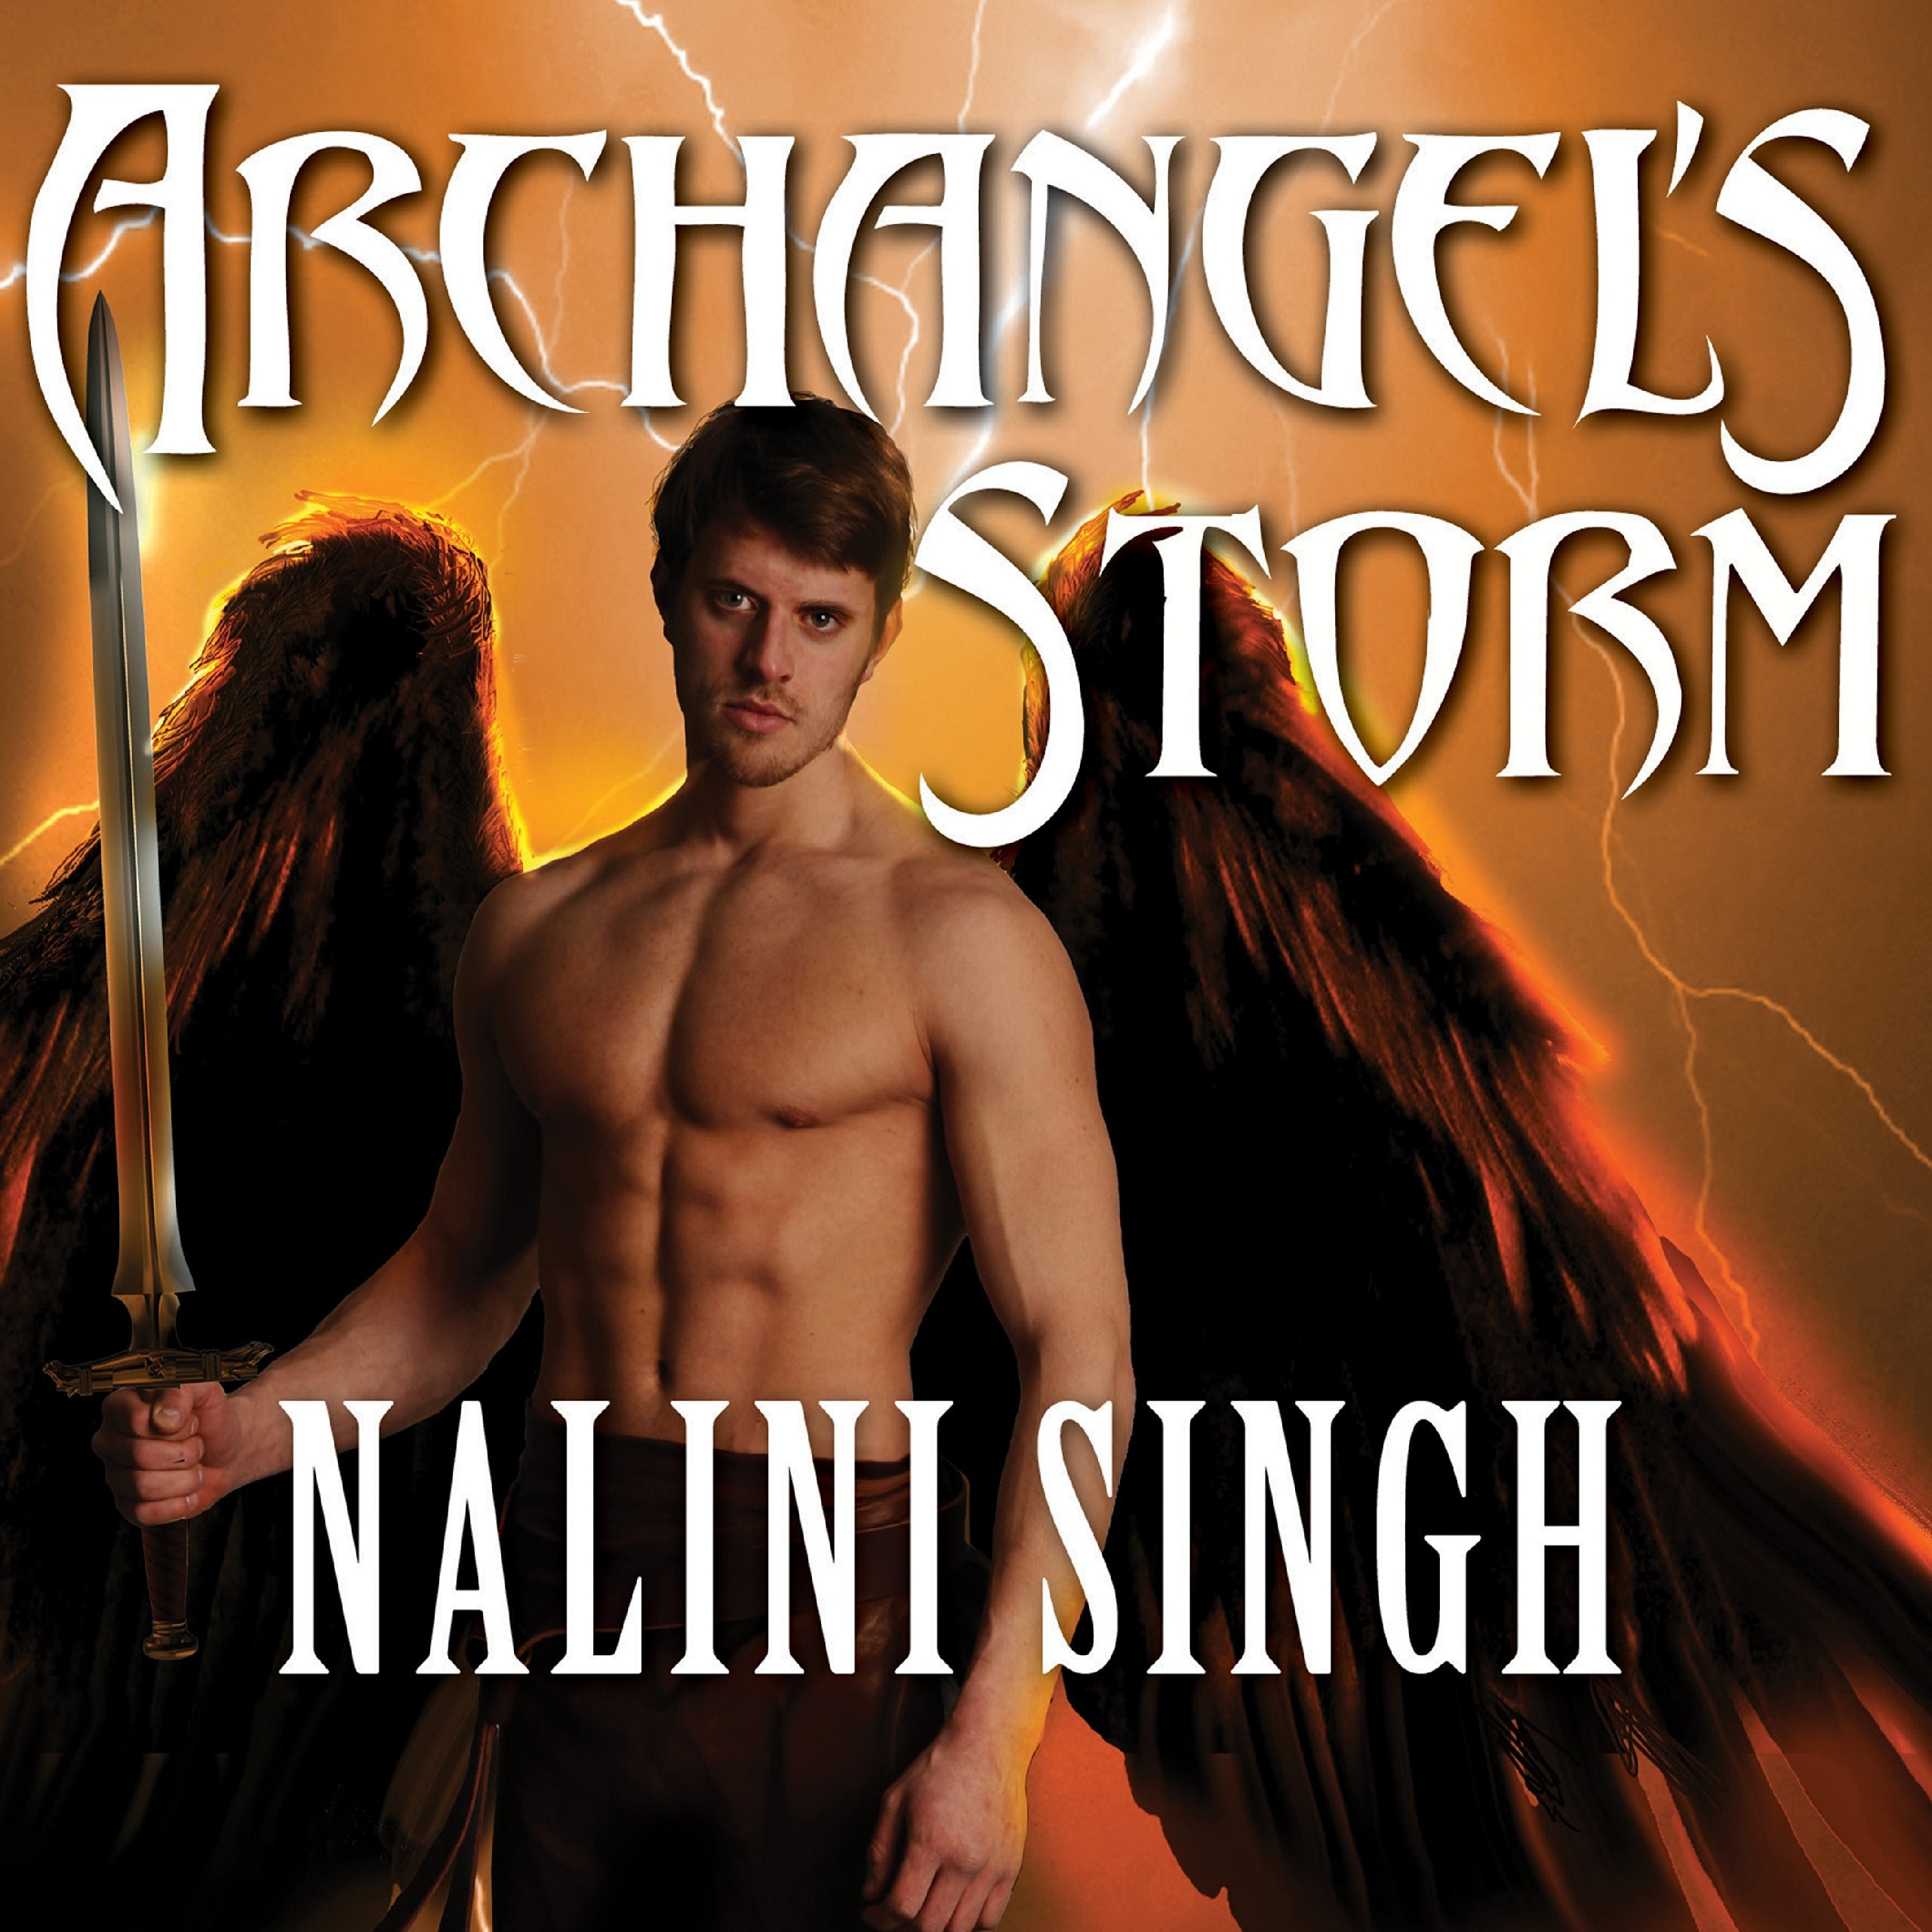 Printable Archangel's Storm Audiobook Cover Art